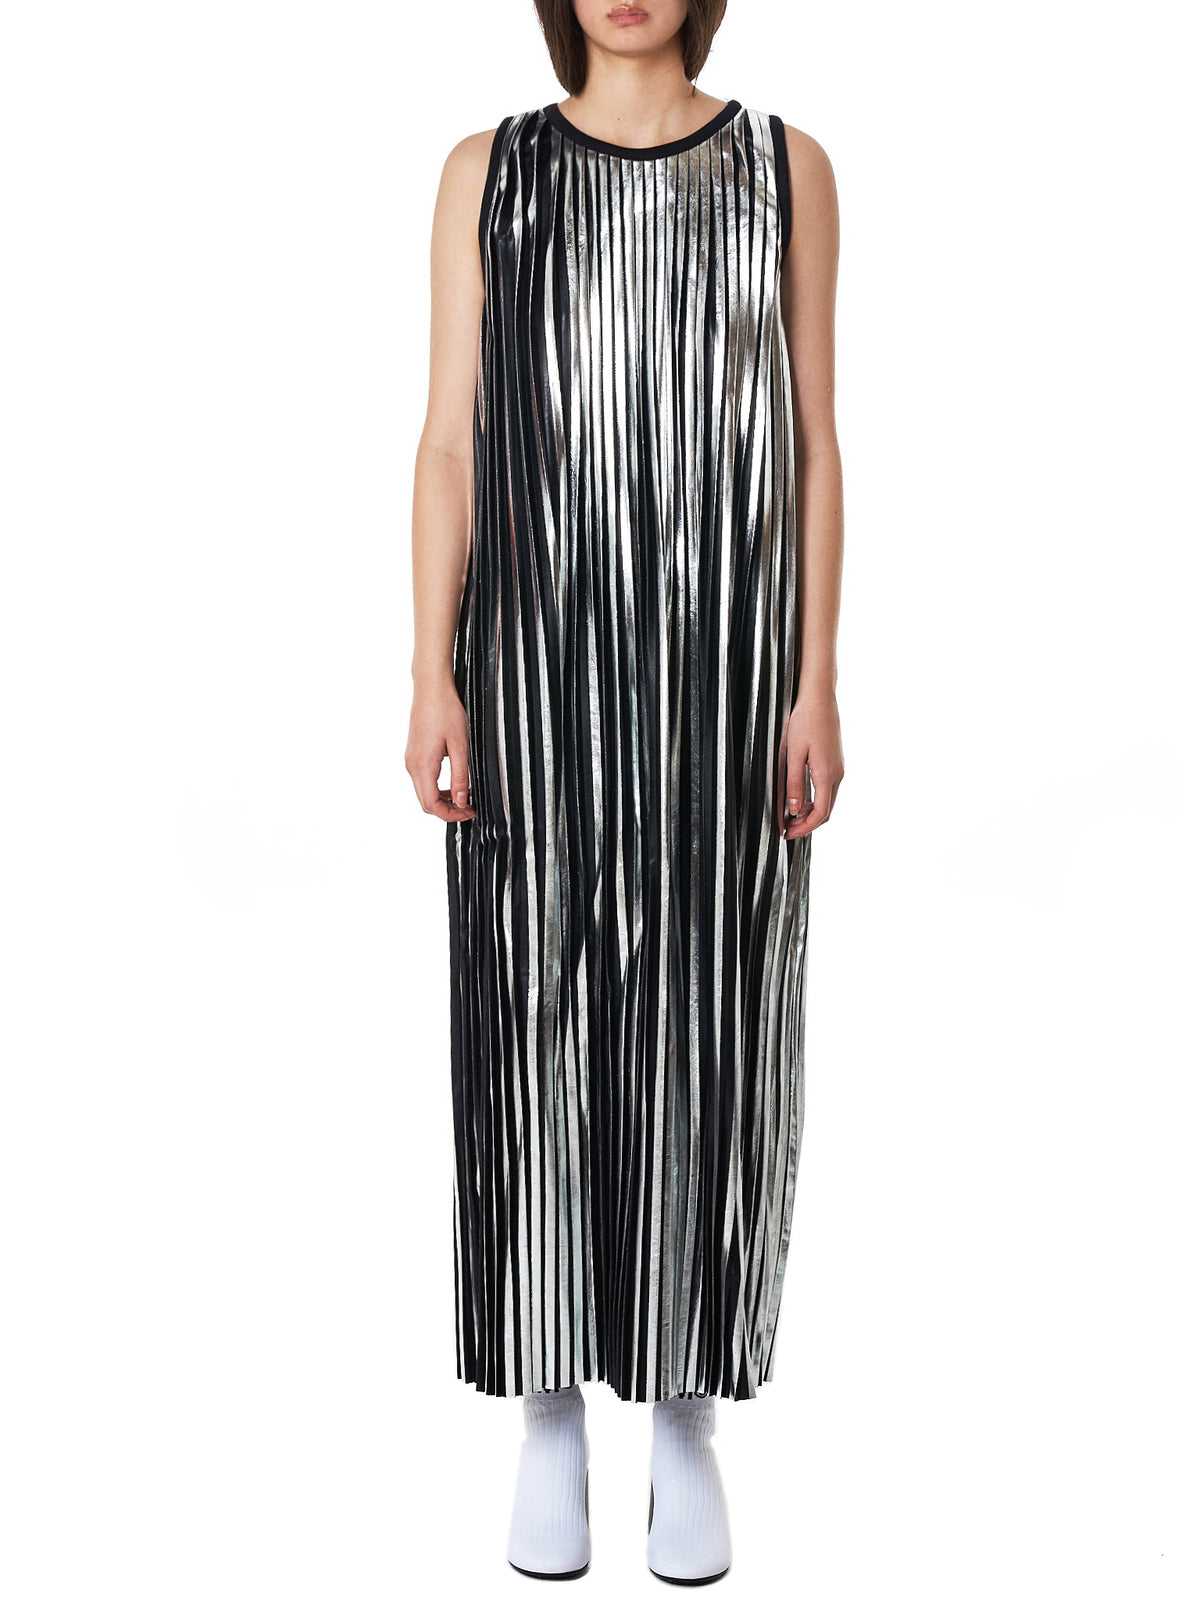 MM6 Maison Margiela Metallic Dress - Hlorenzo Front